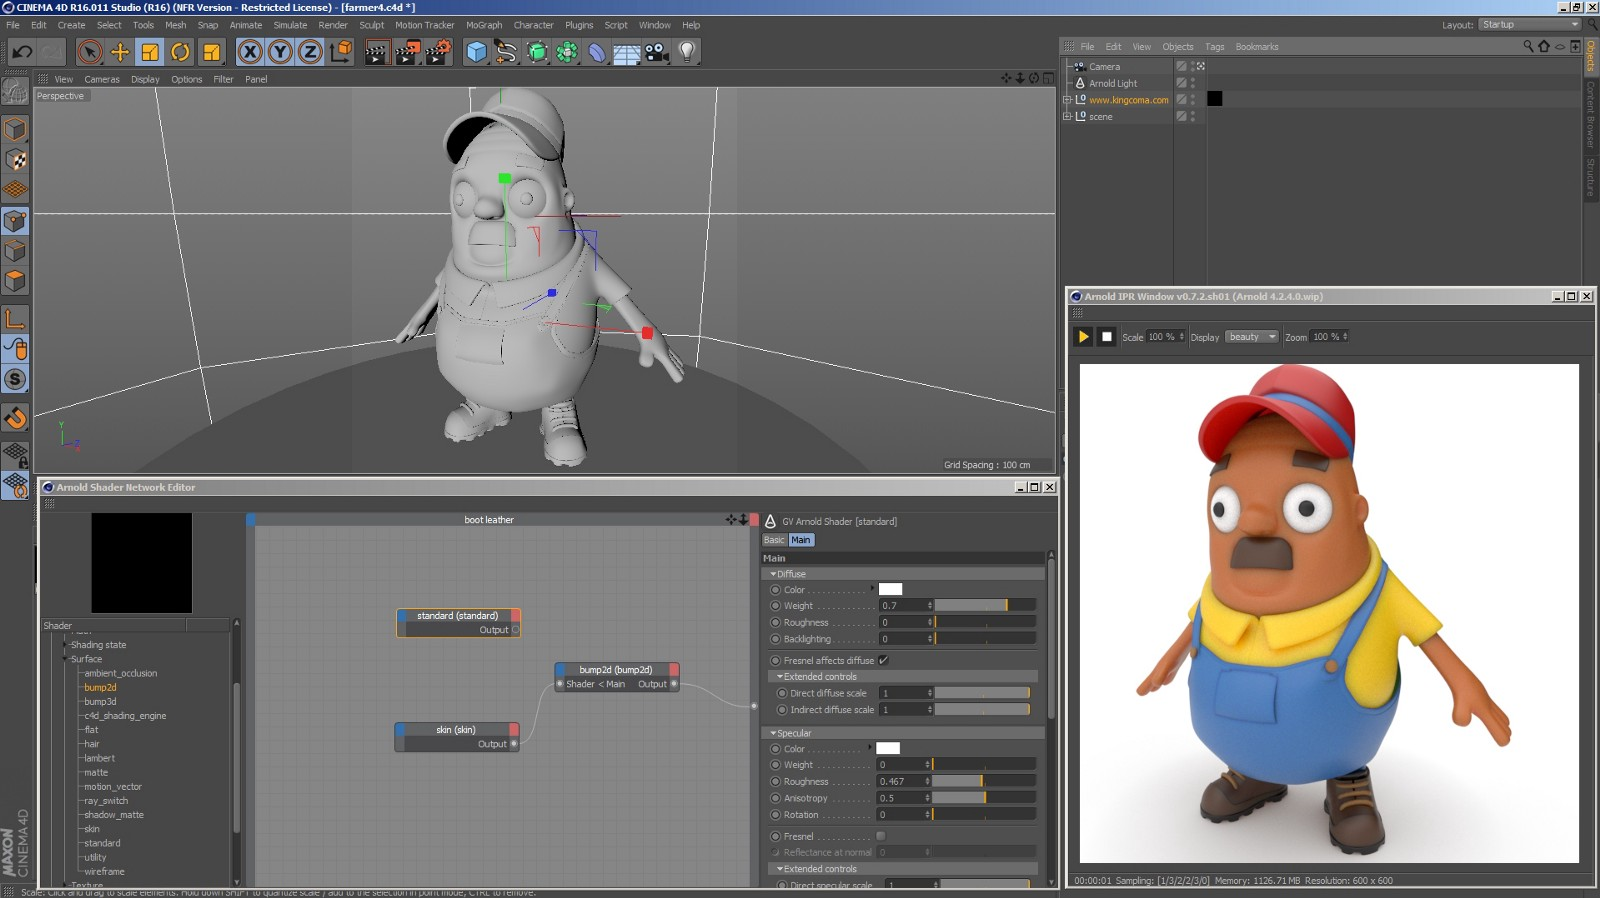 3d Modeling Rendering And Animation 15 Best Tools For 3d Modeling Software Joanna Ngai Medium